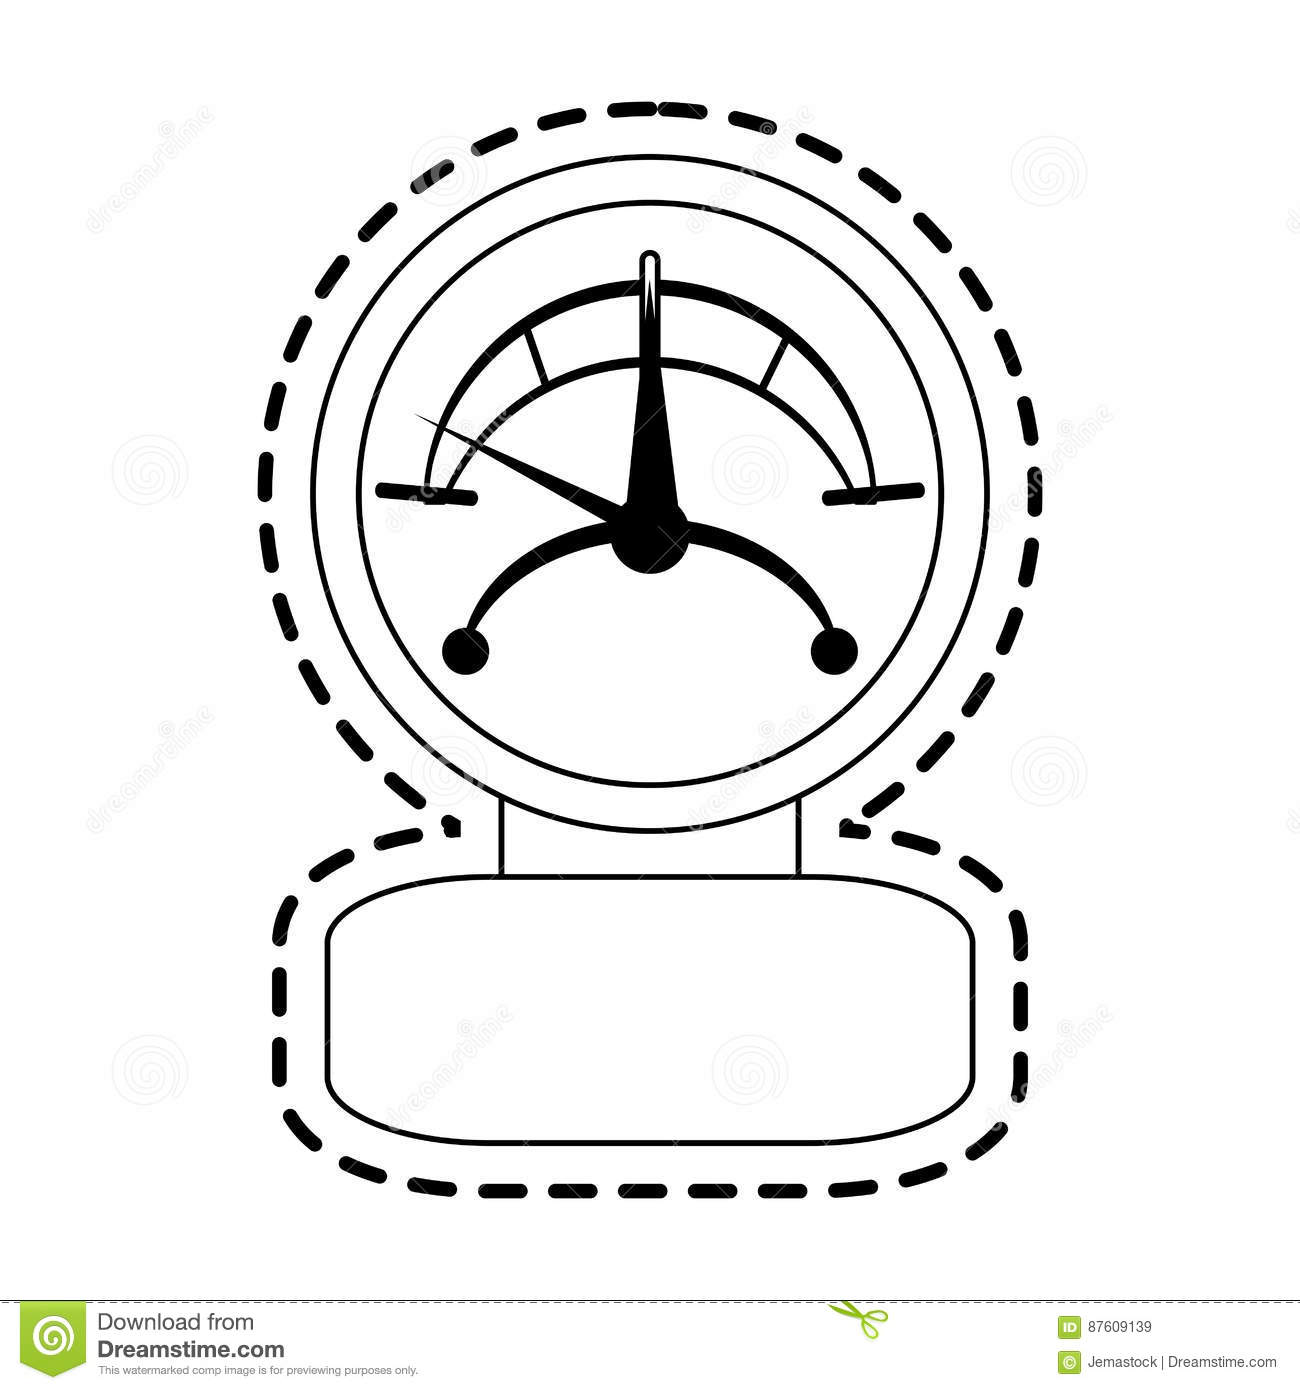 Measuring Gauge Icon Image Stock Vector Illustration Of